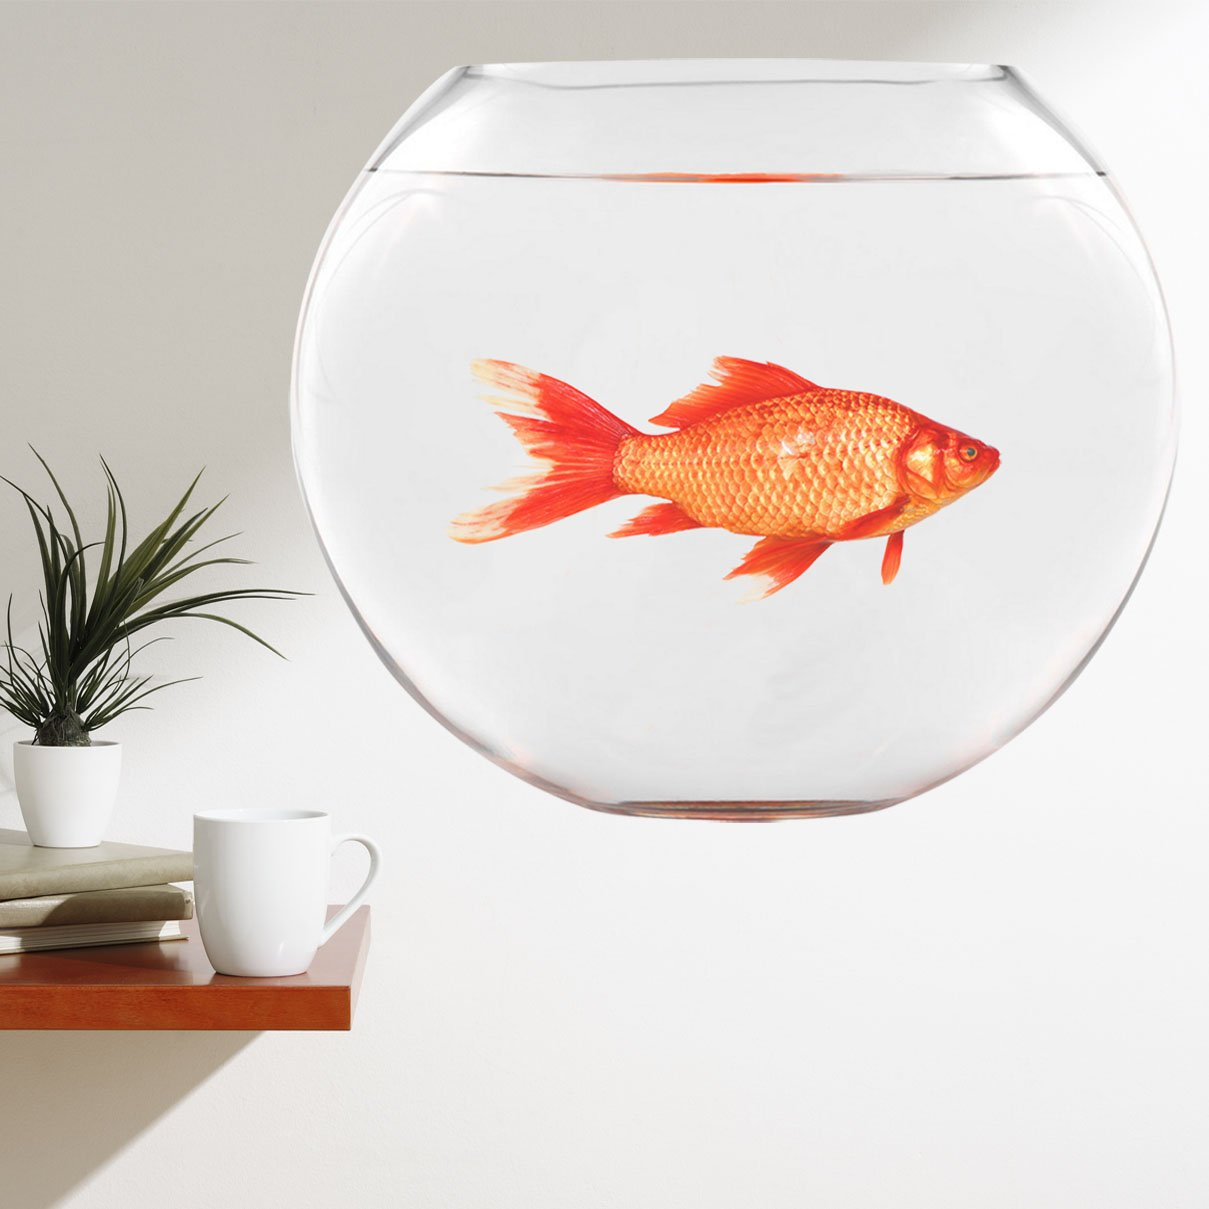 VWAQ Goldfish Fishbowl Wall Stickers - Funny Vinyl Decals Humorous Art Decor - FWP7 - VWAQ Vinyl Wall Art Quotes and Prints